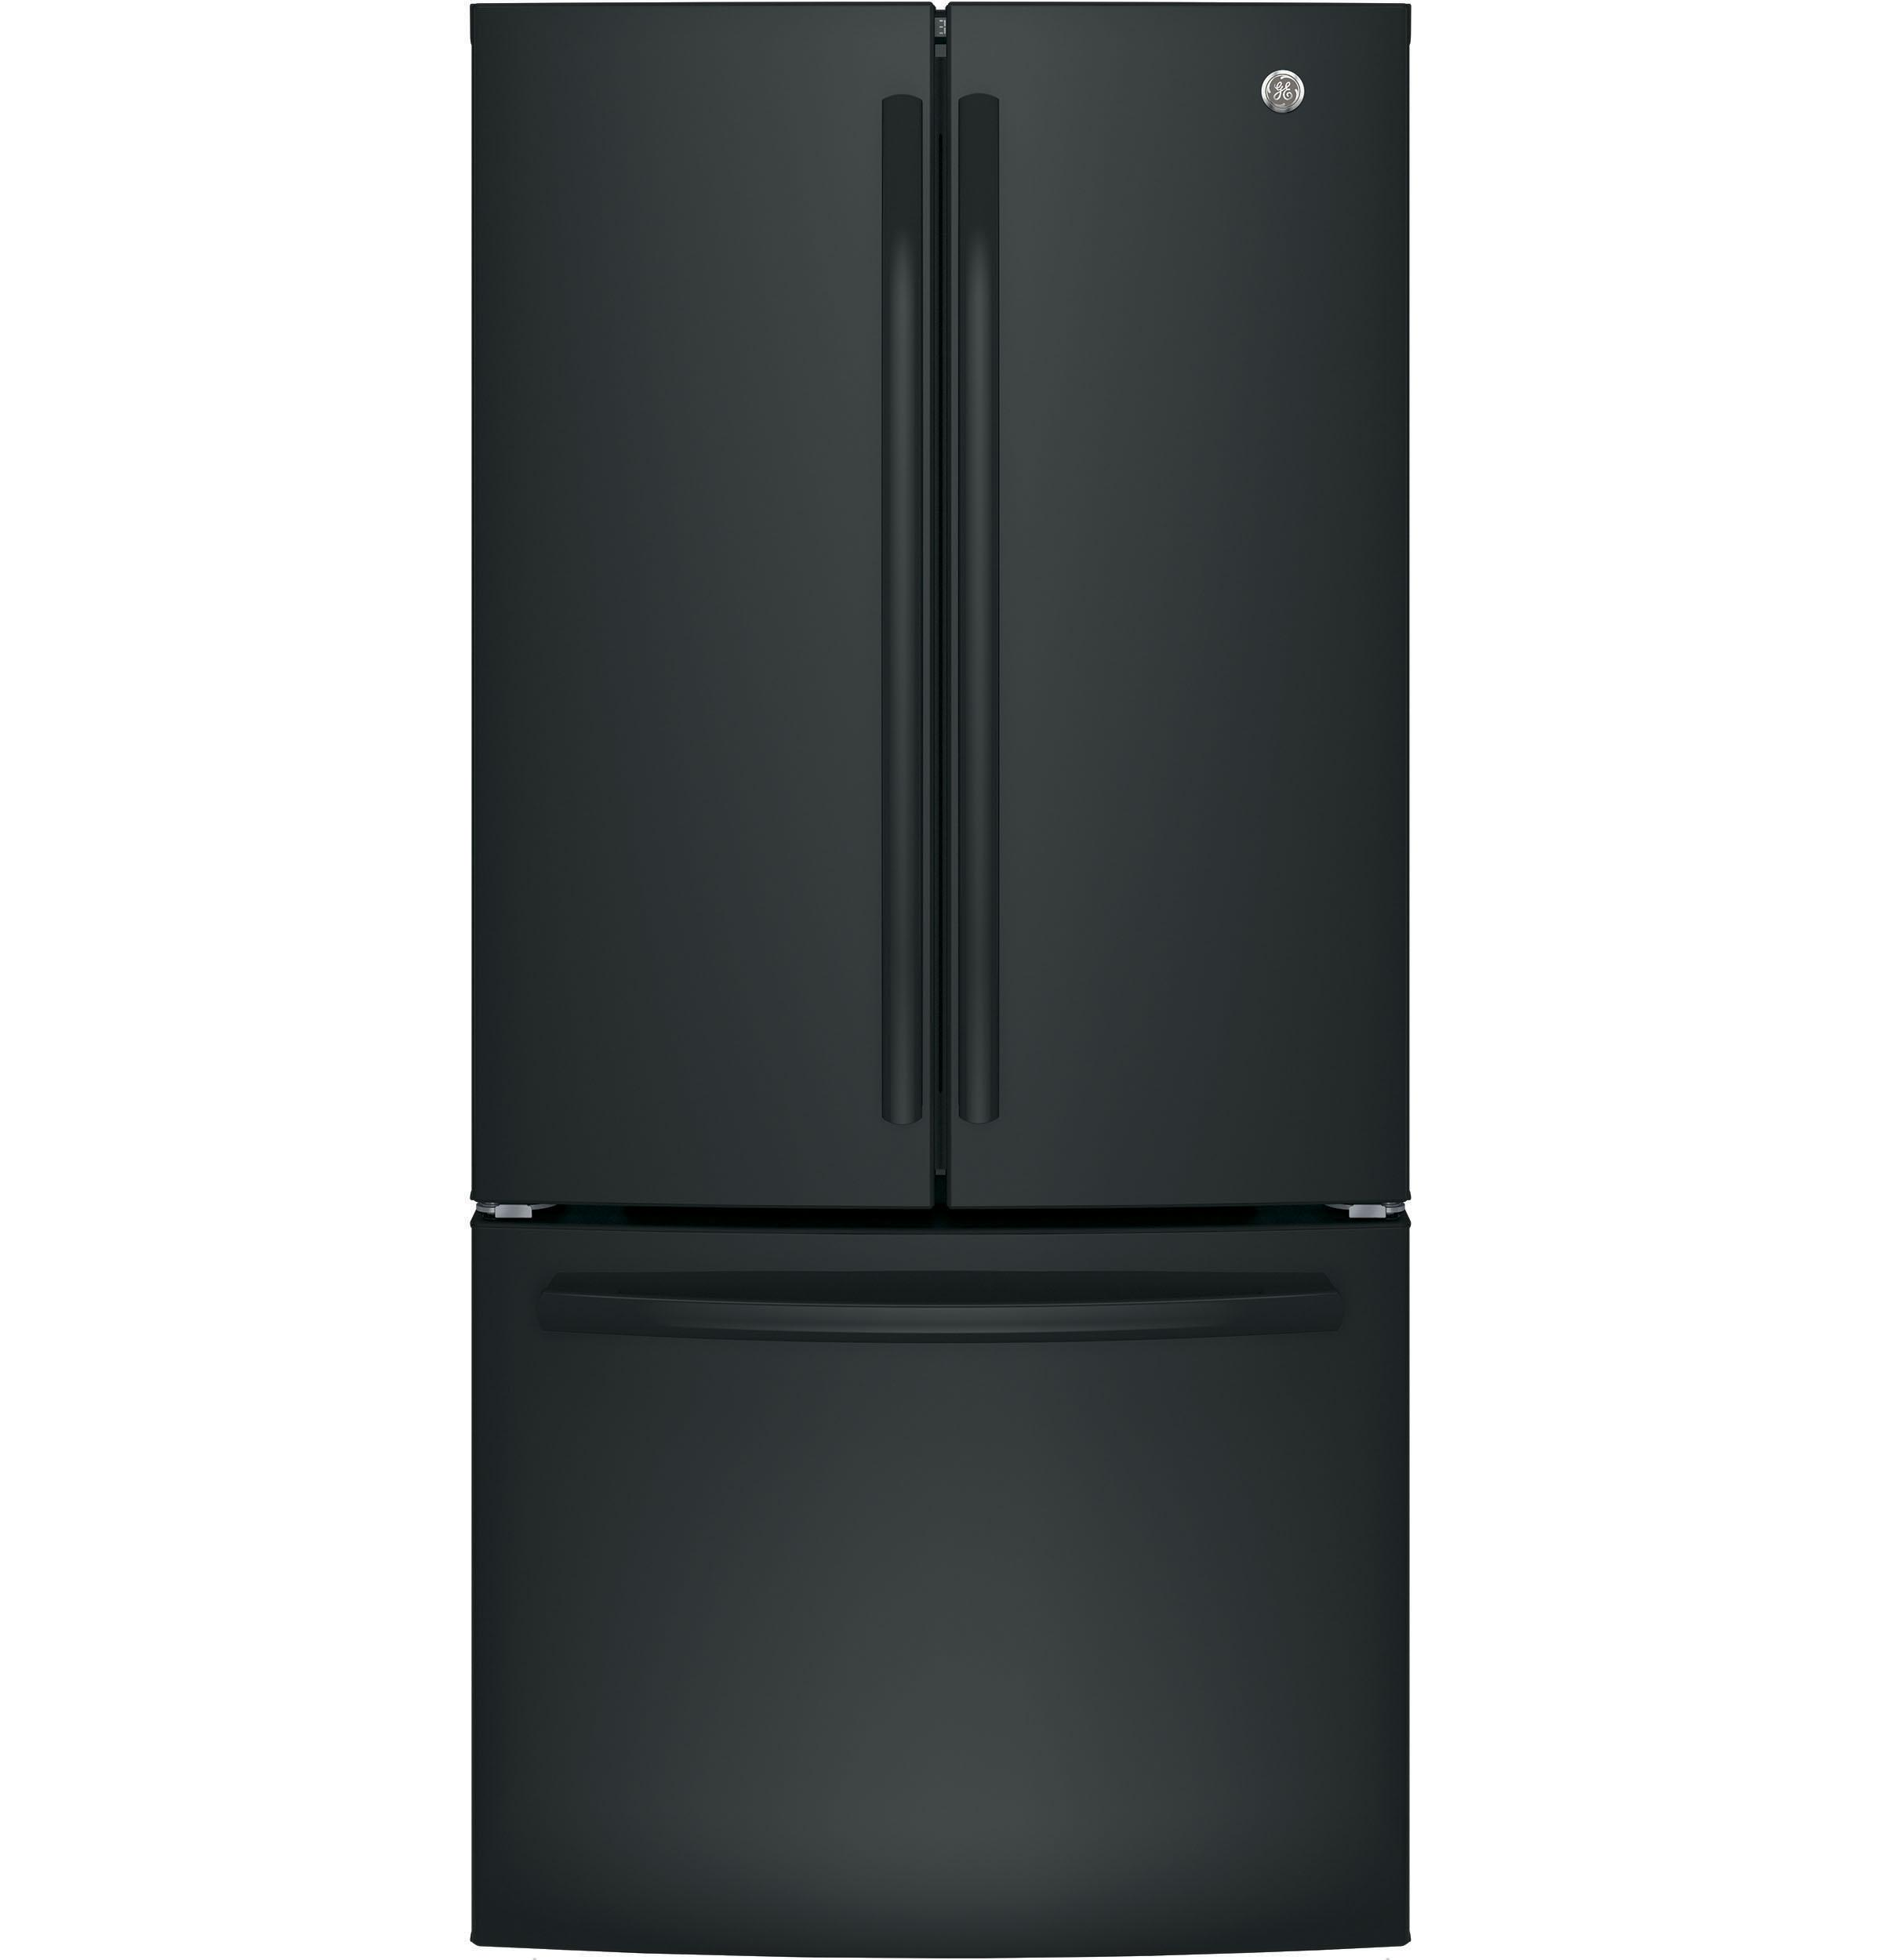 GE(R) ENERGY STAR(R) 24.7 Cu. Ft. French-Door Refrigerator